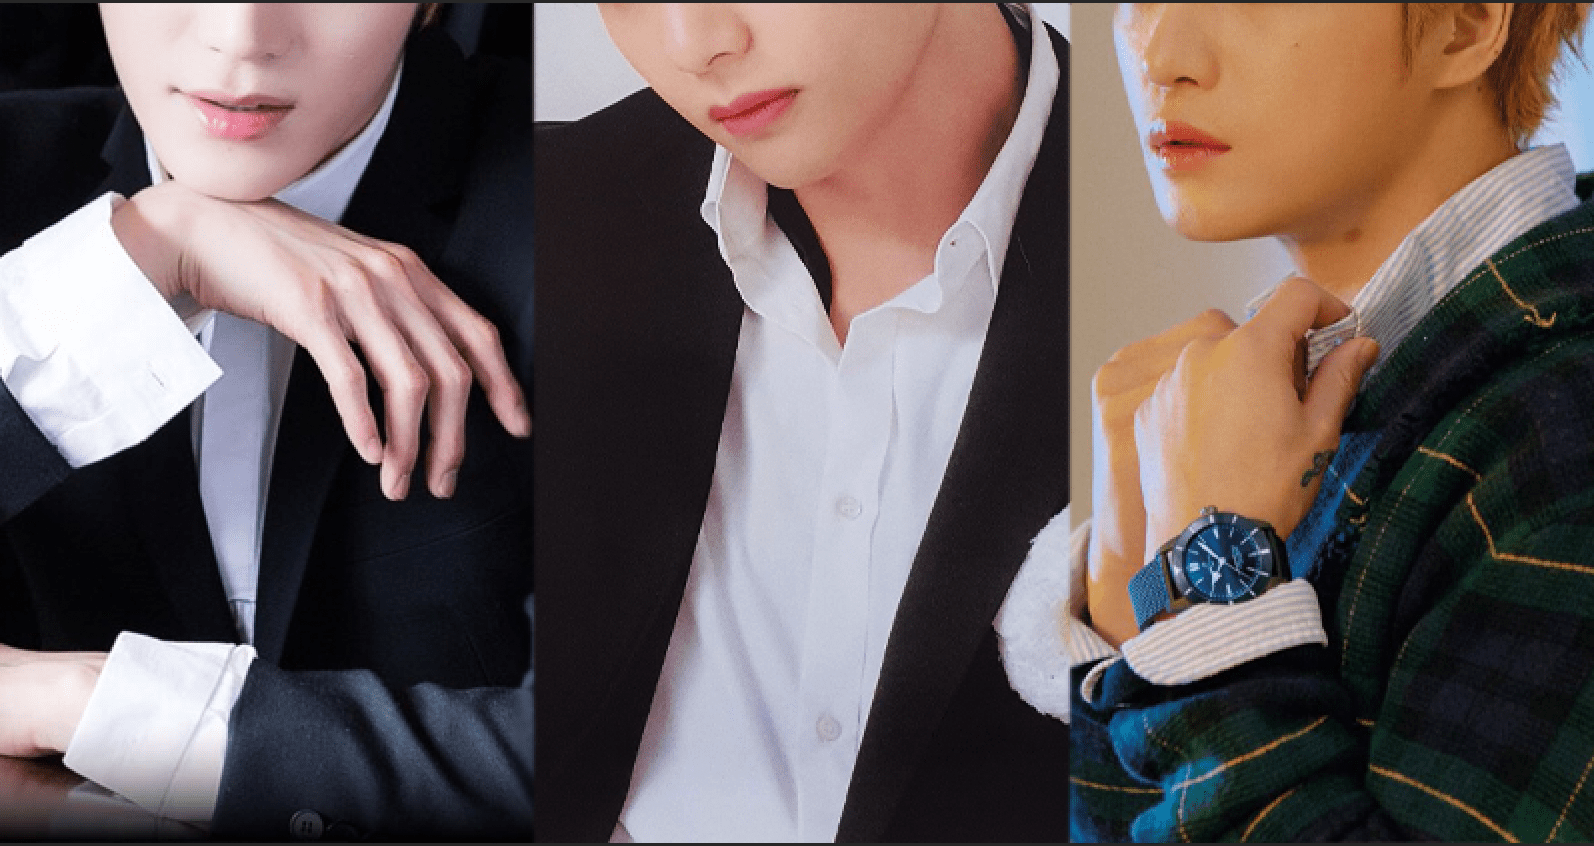 Top 20 Most Handsome Male K-Pop Idols Voted by Japanese Girls